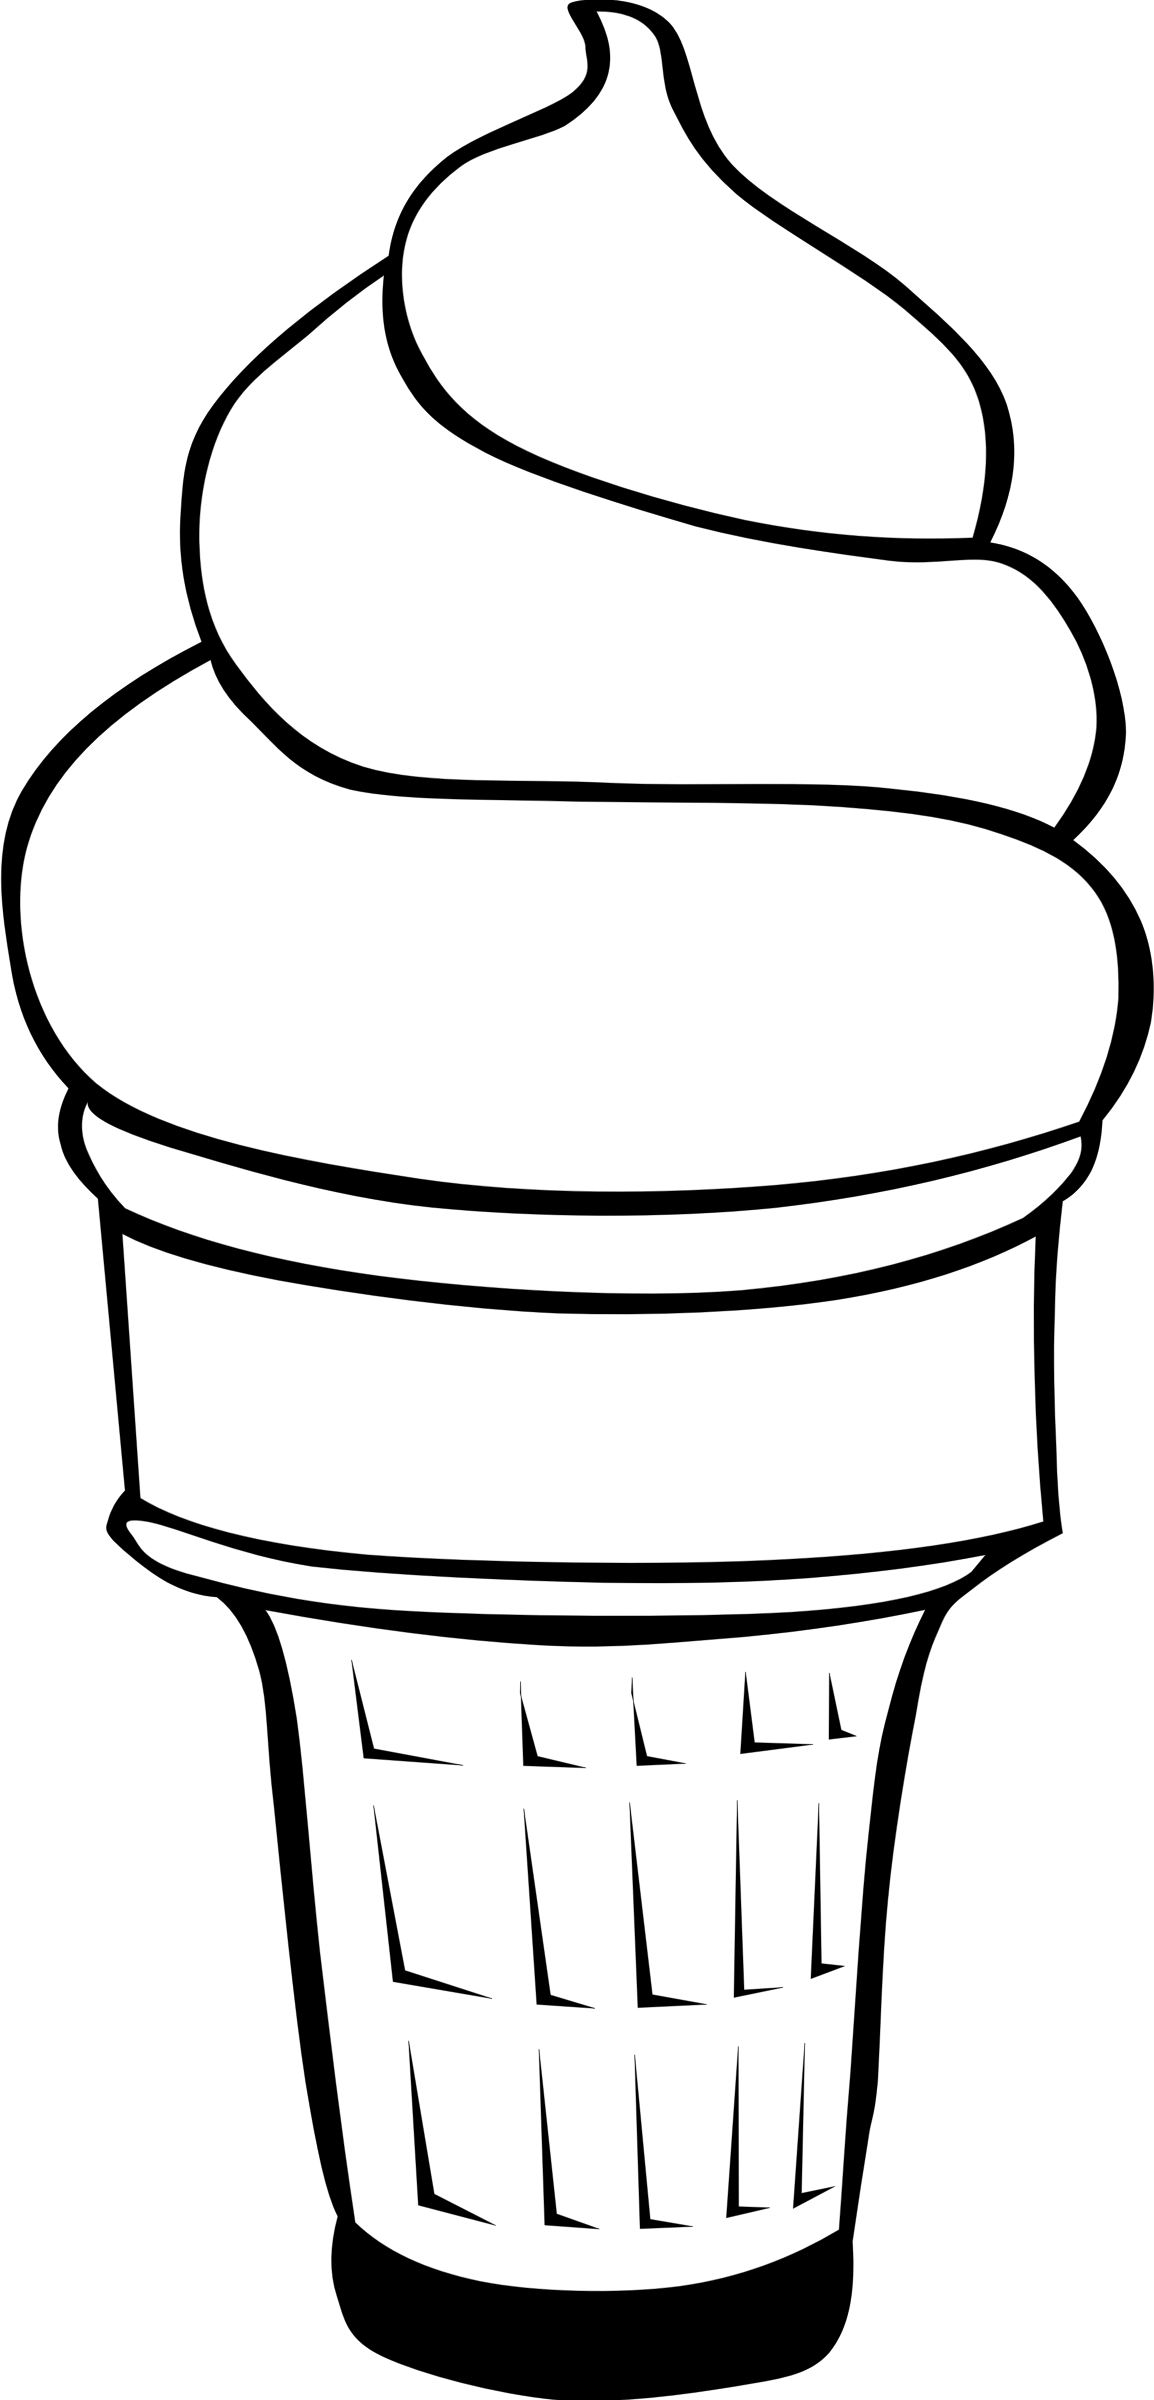 1154x2400 clipart 1154x2400 clipart 1 700x933 appealing ice cream coloring pages 42 on coloring - Coloring Page Ice Cream Cone